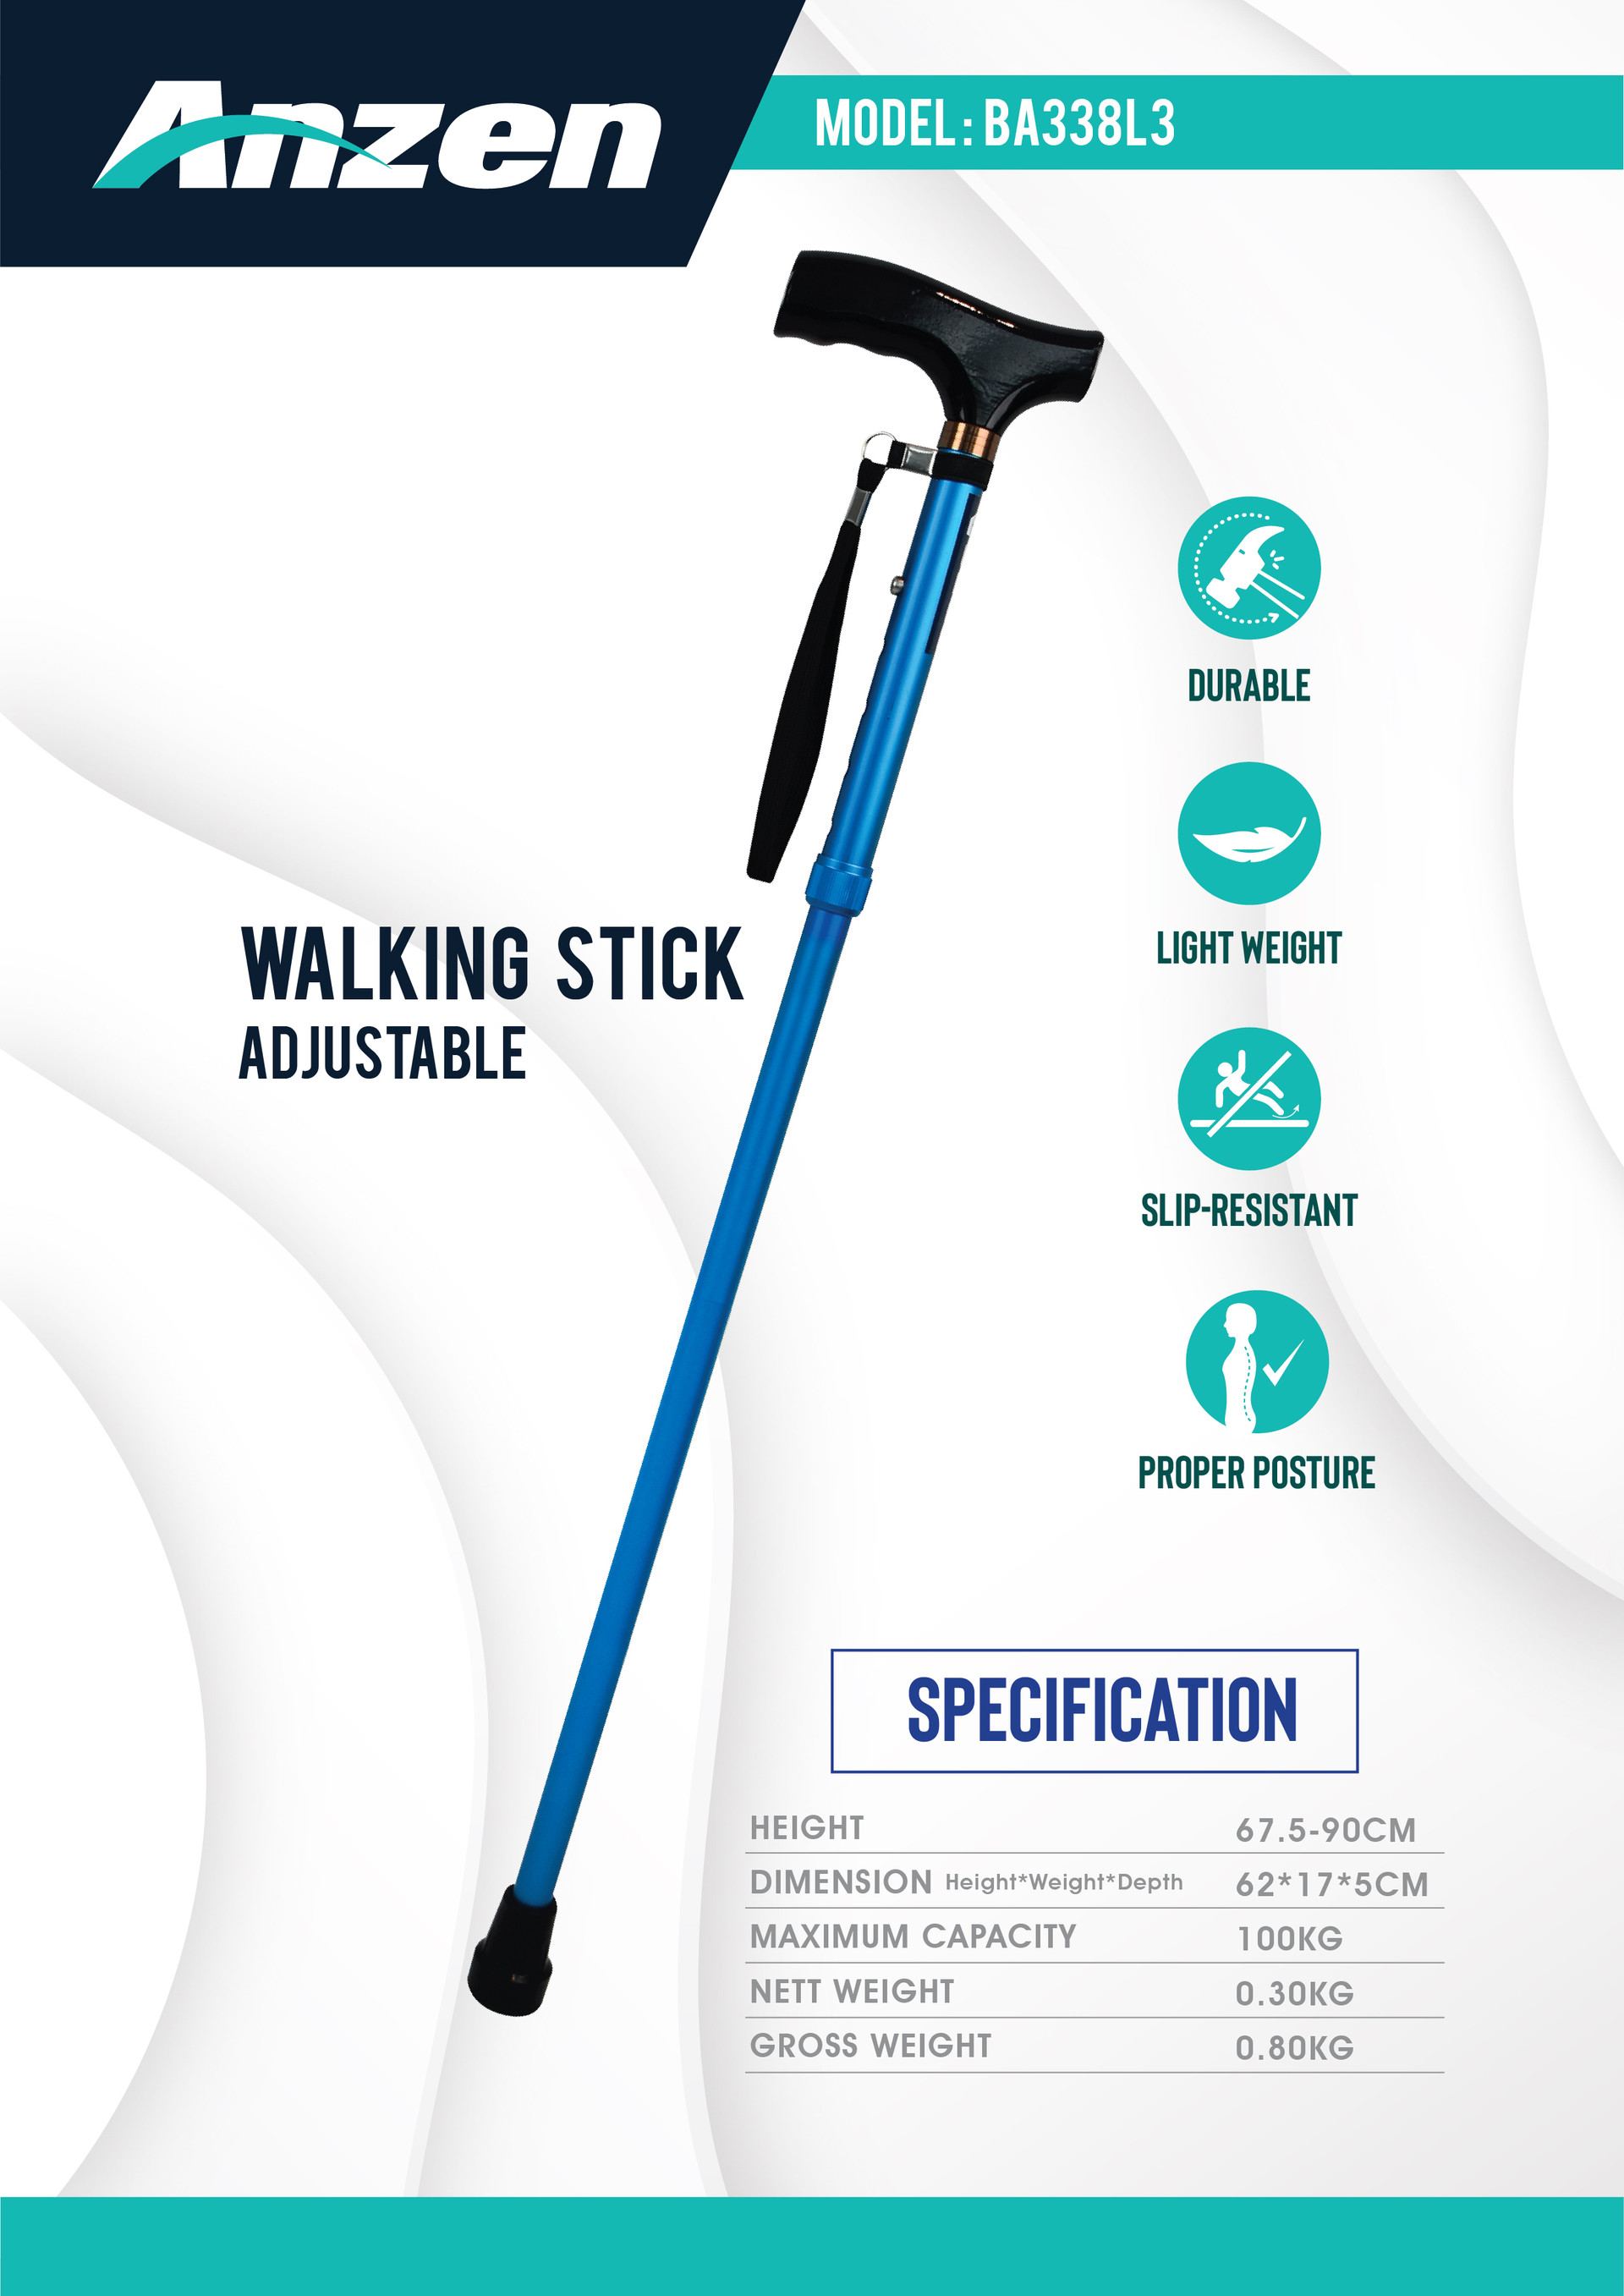 walking stick-06.jpg